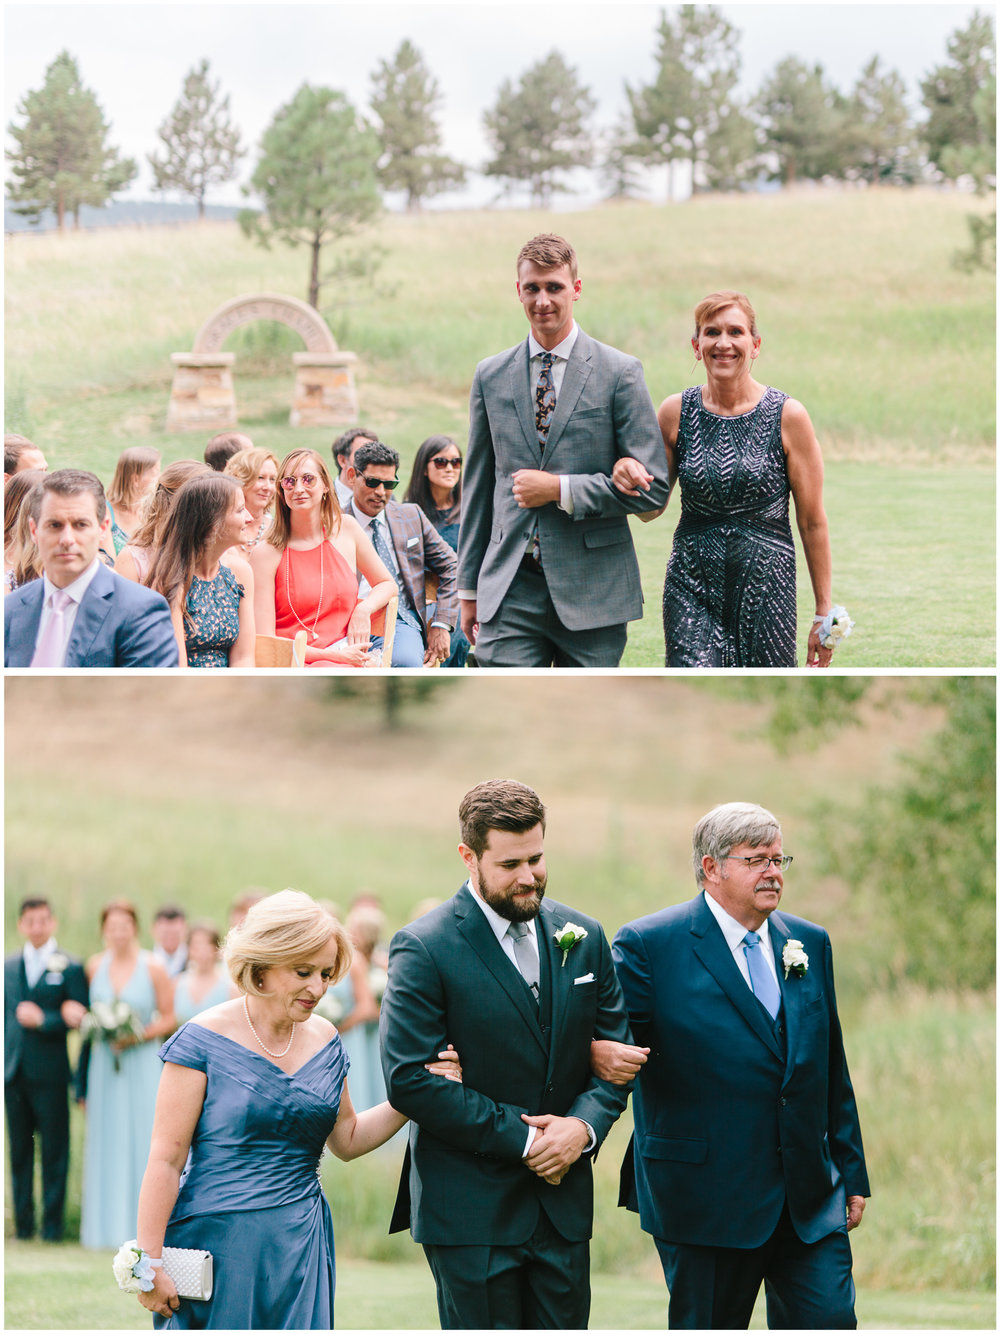 Spruce_Mountain_Ranch_Wedding_27.jpg